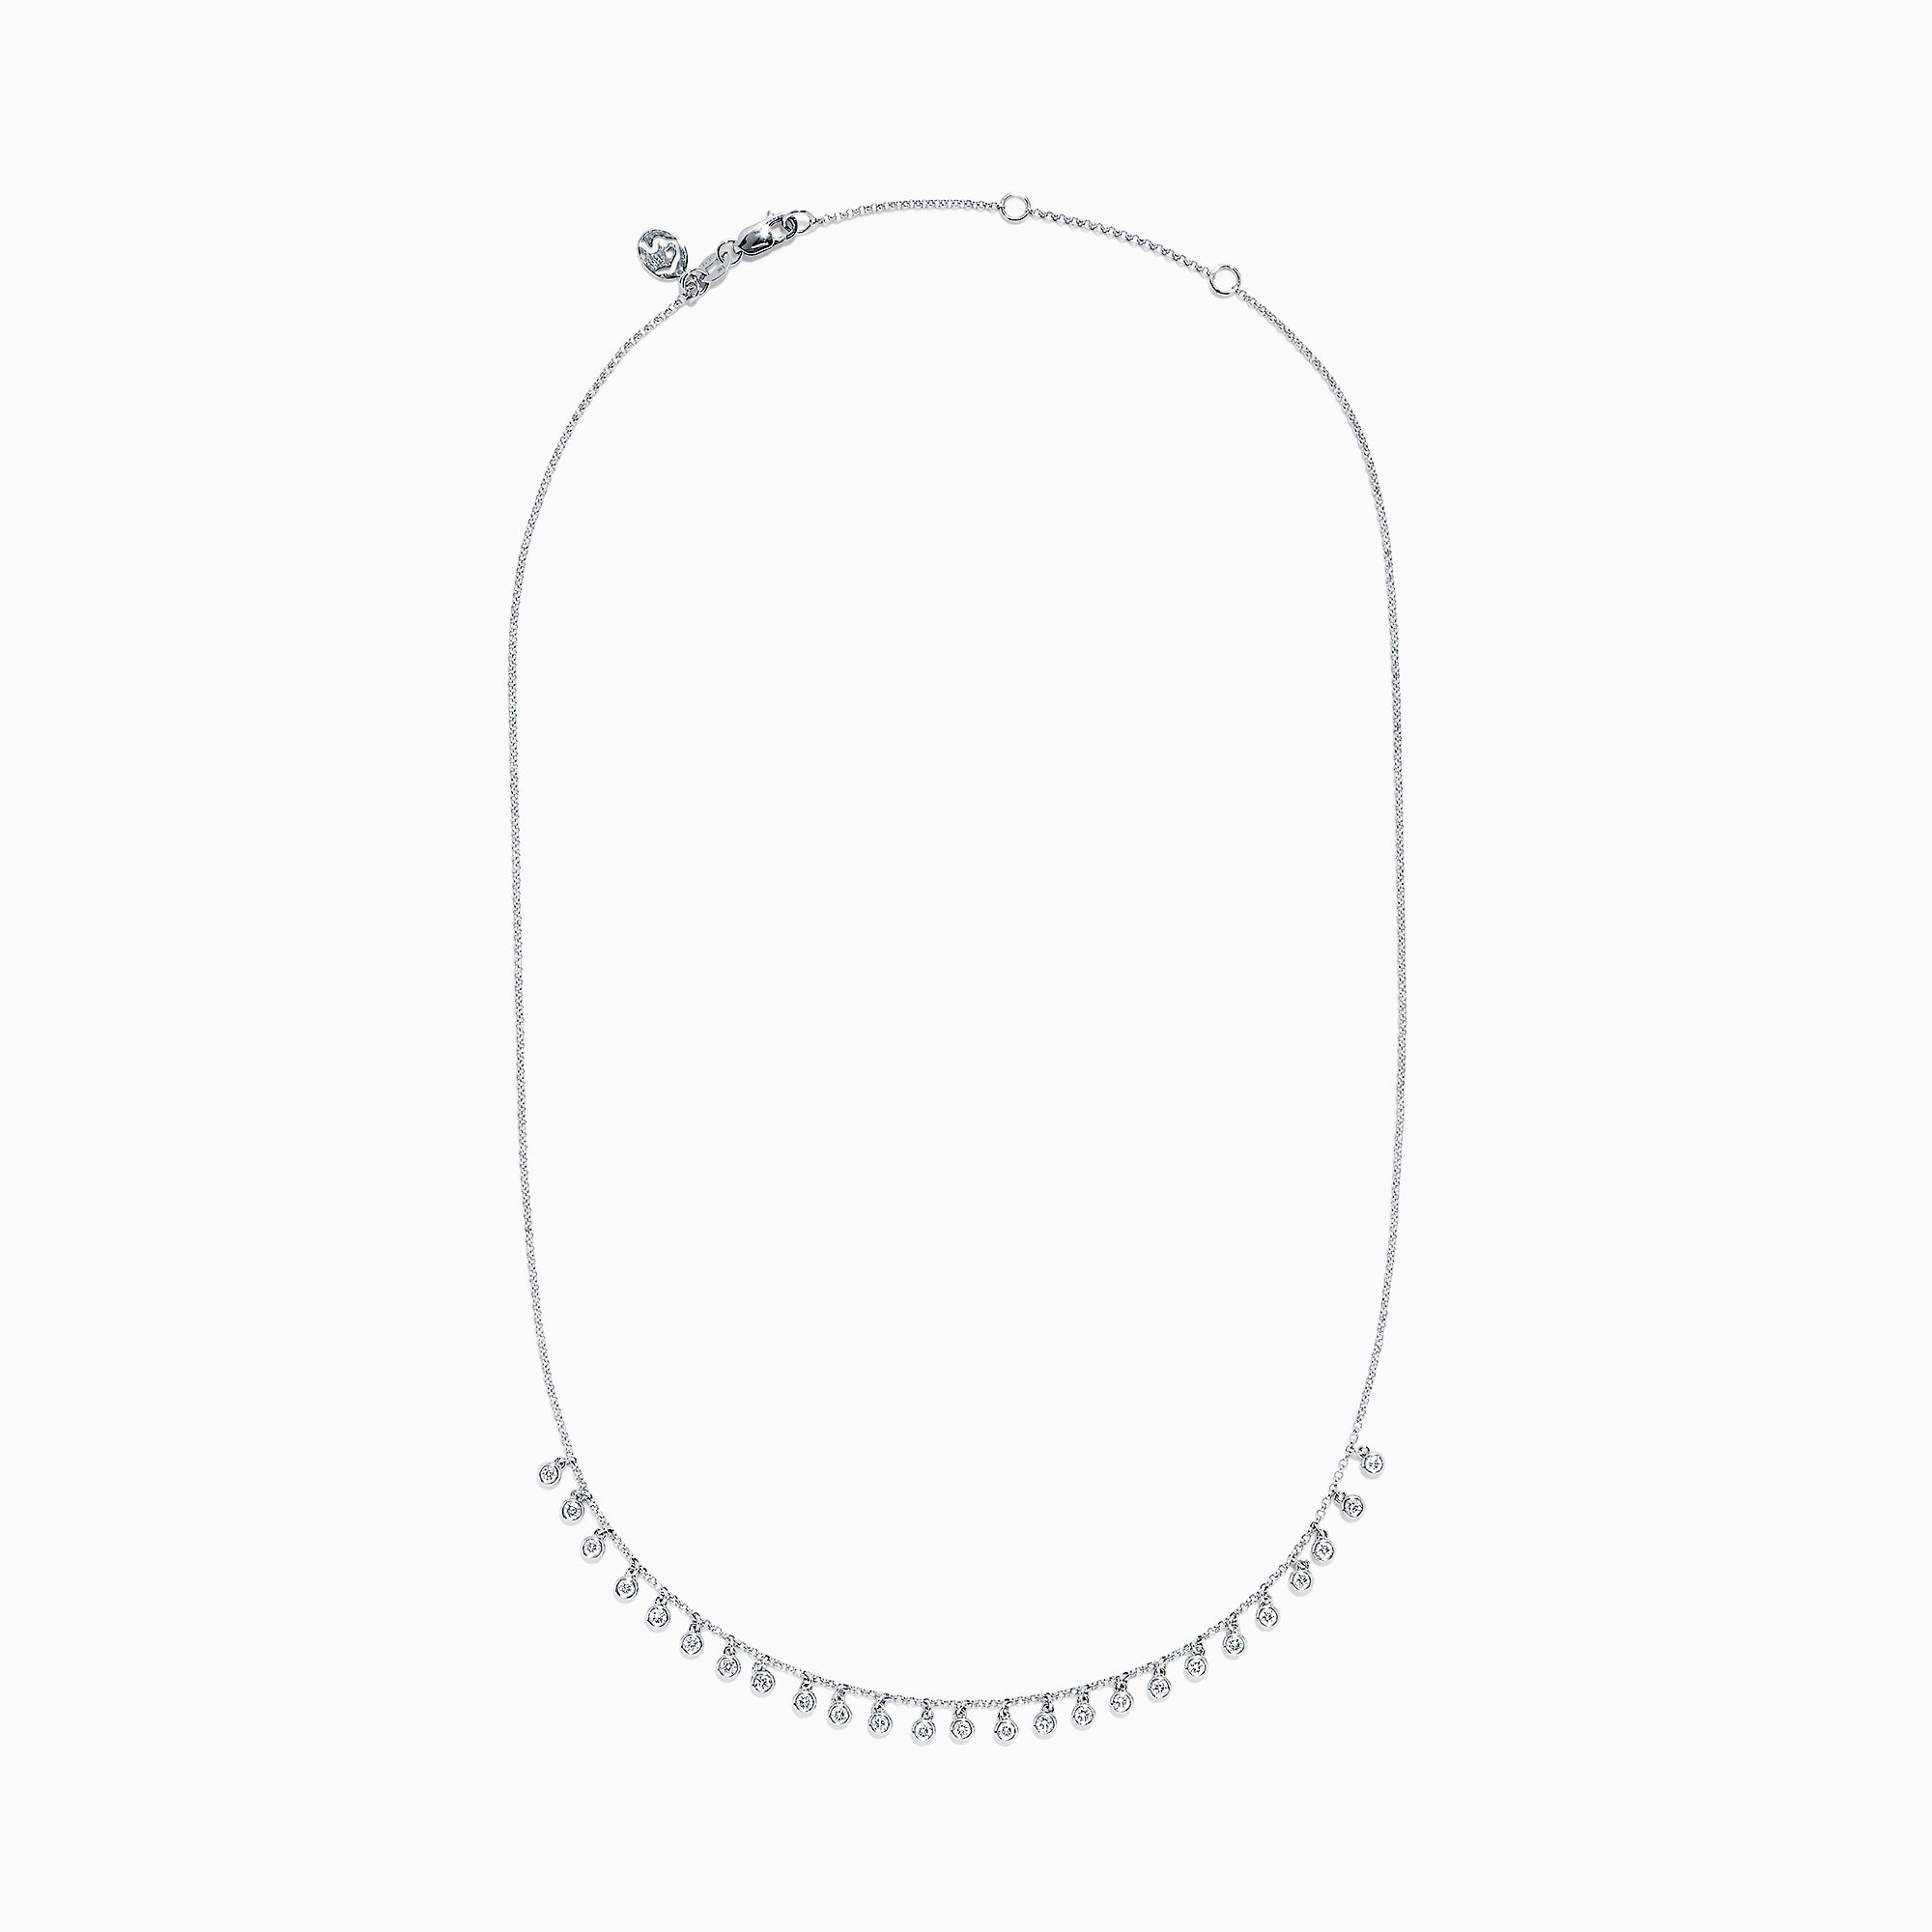 Effy Pave Classica 14K White Gold Diamond Necklace, 0.74 TCW